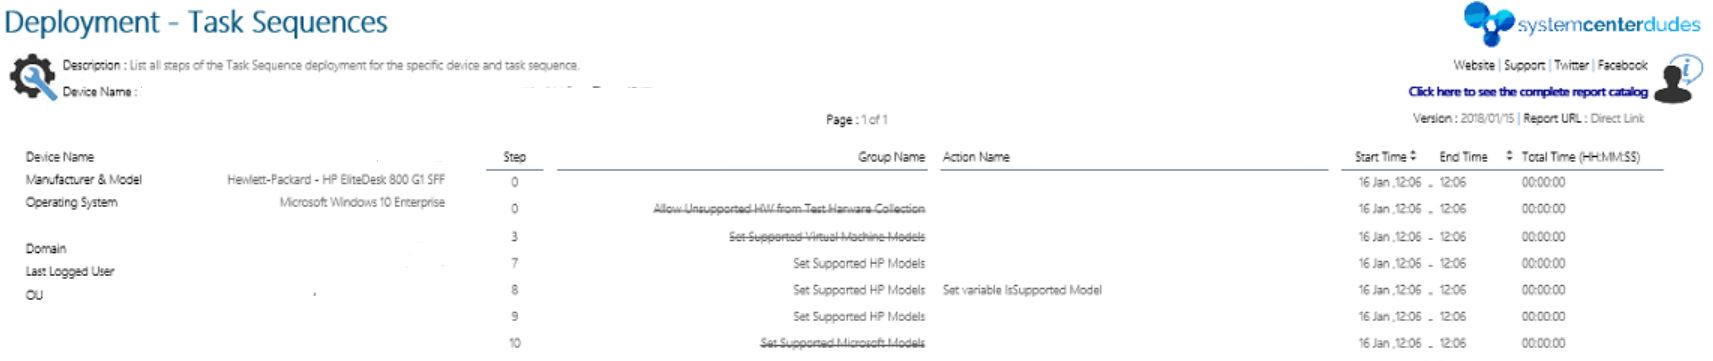 SCCM OSD Reports